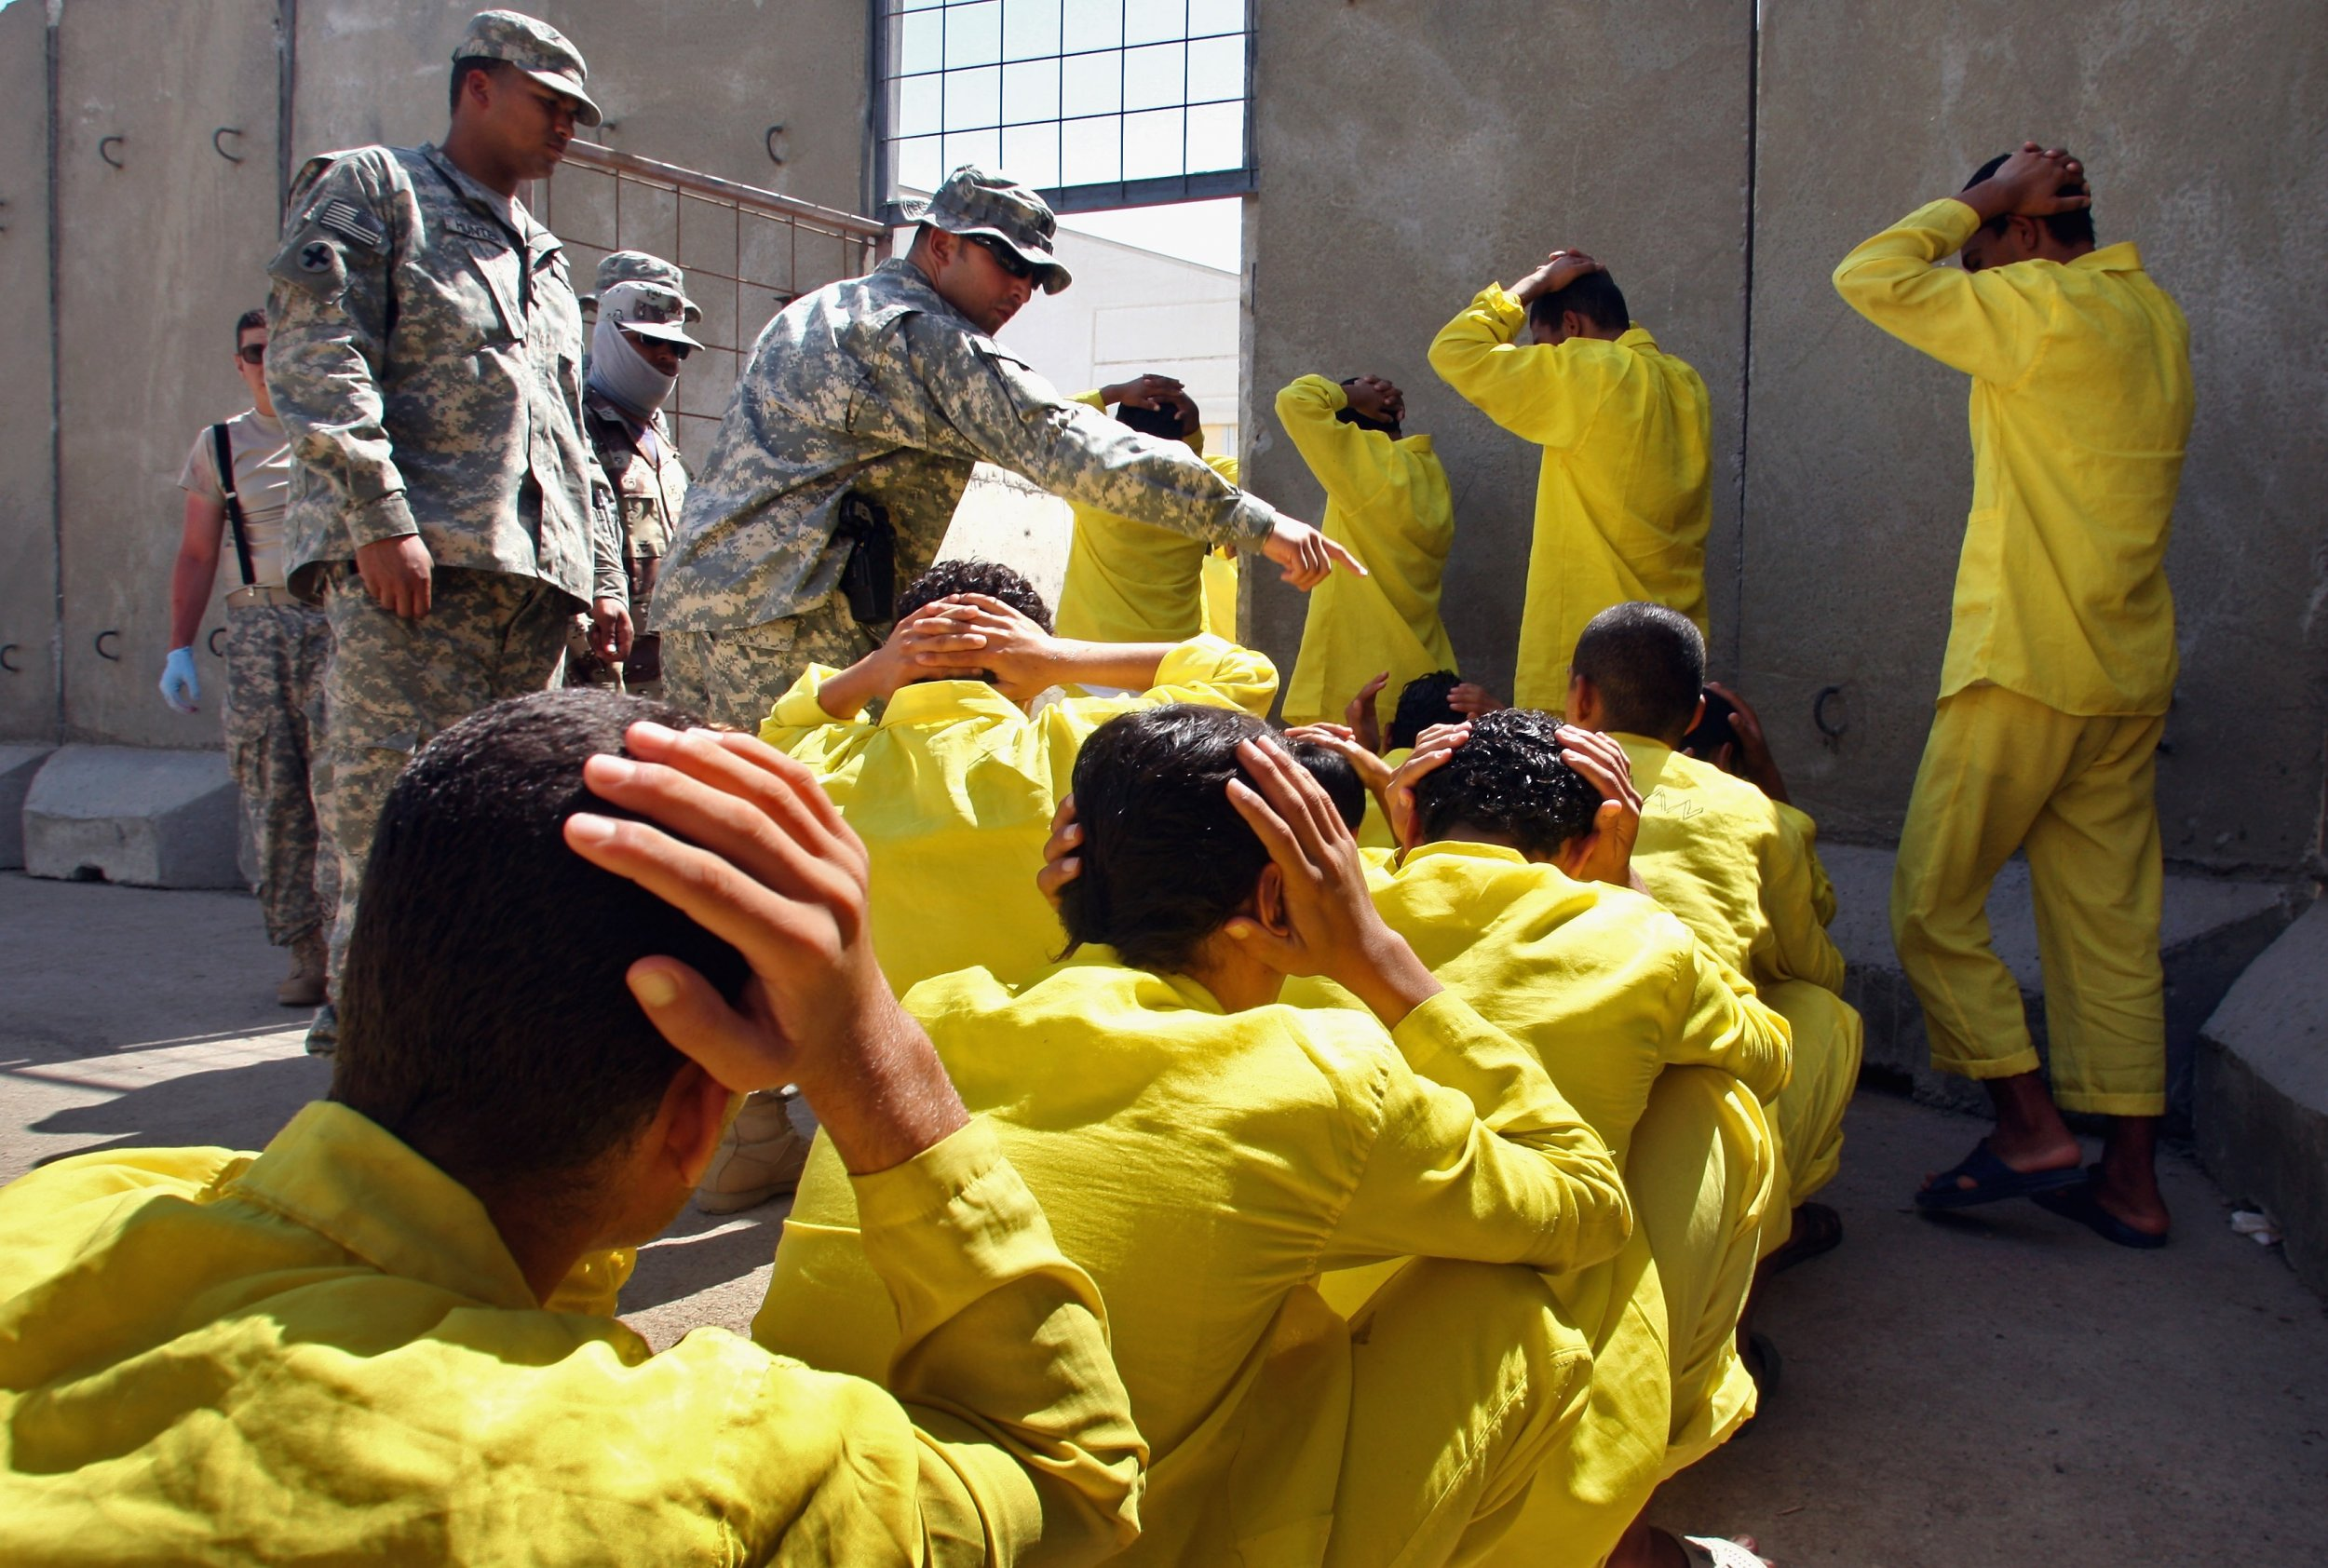 CIA and U.S. Armed Forces May Have Tortured Detainees in